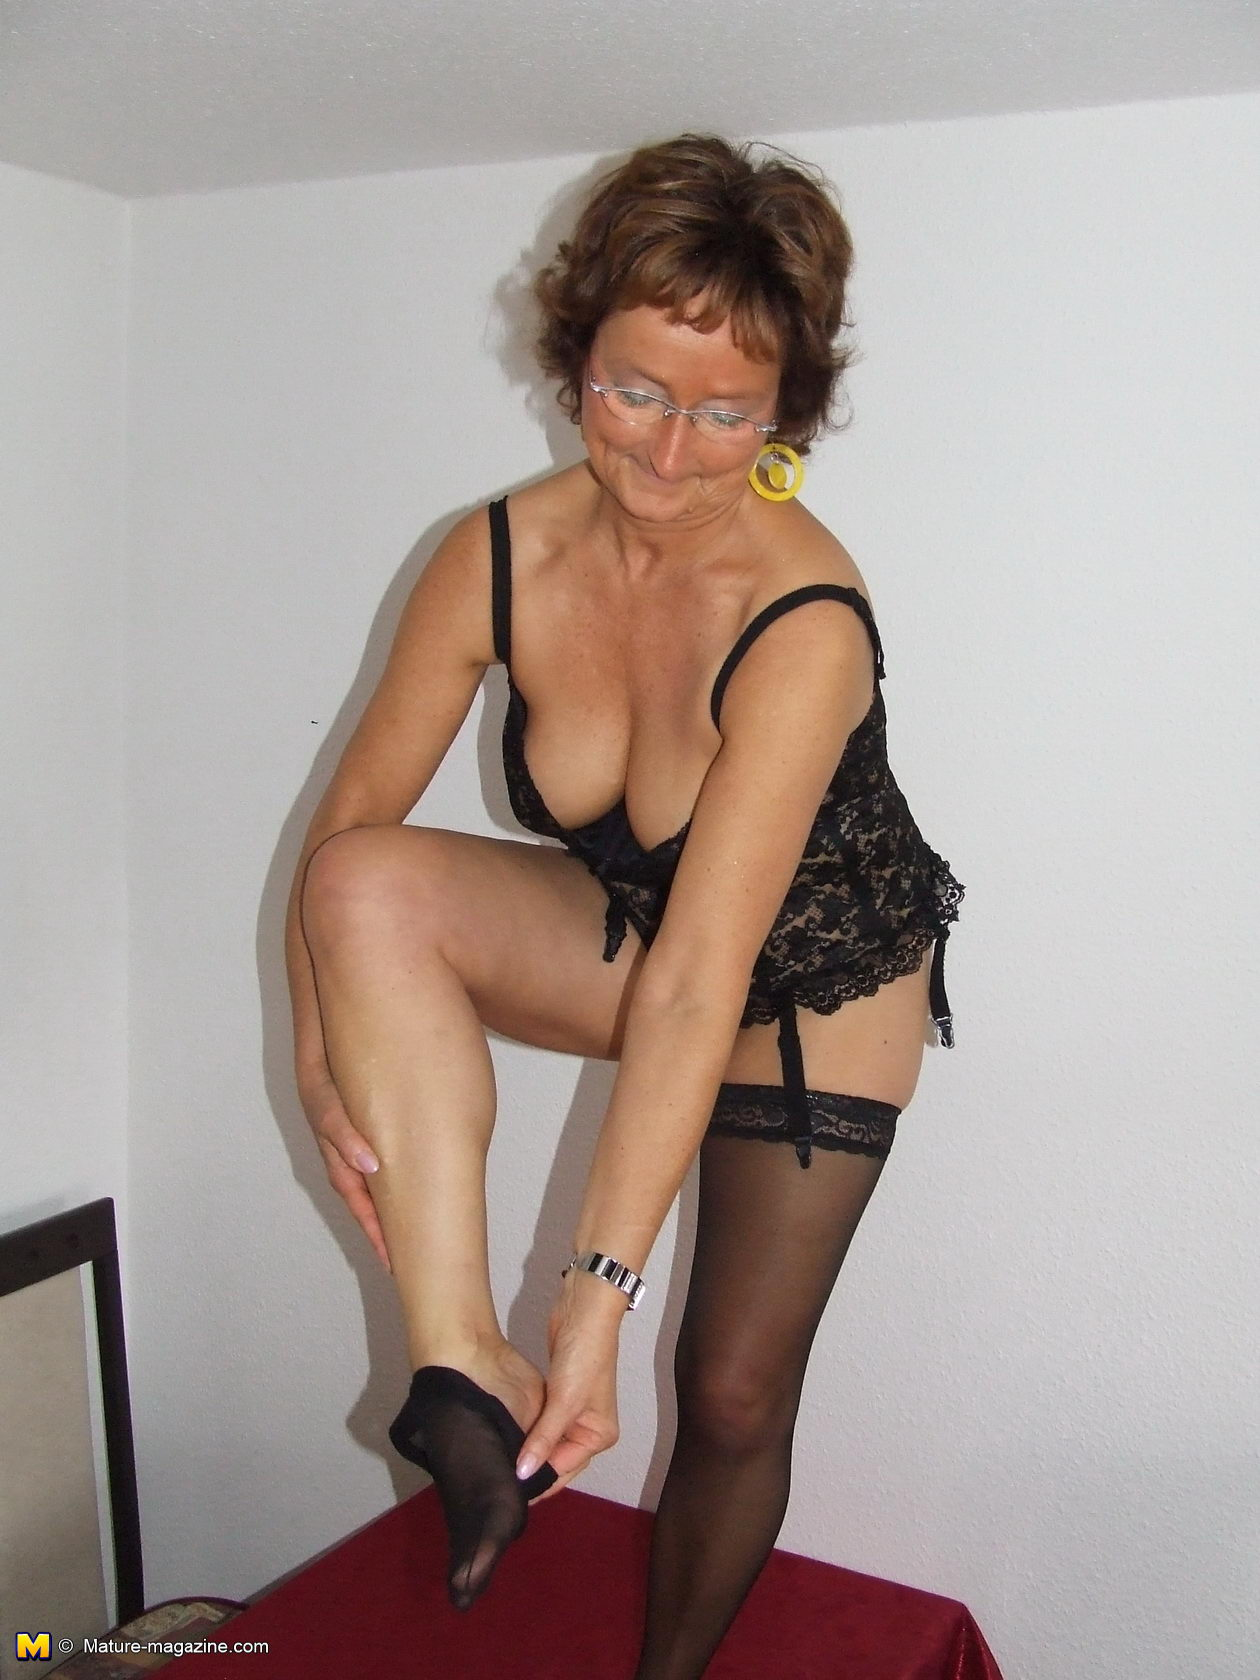 image Granny showing off her old but still hot body